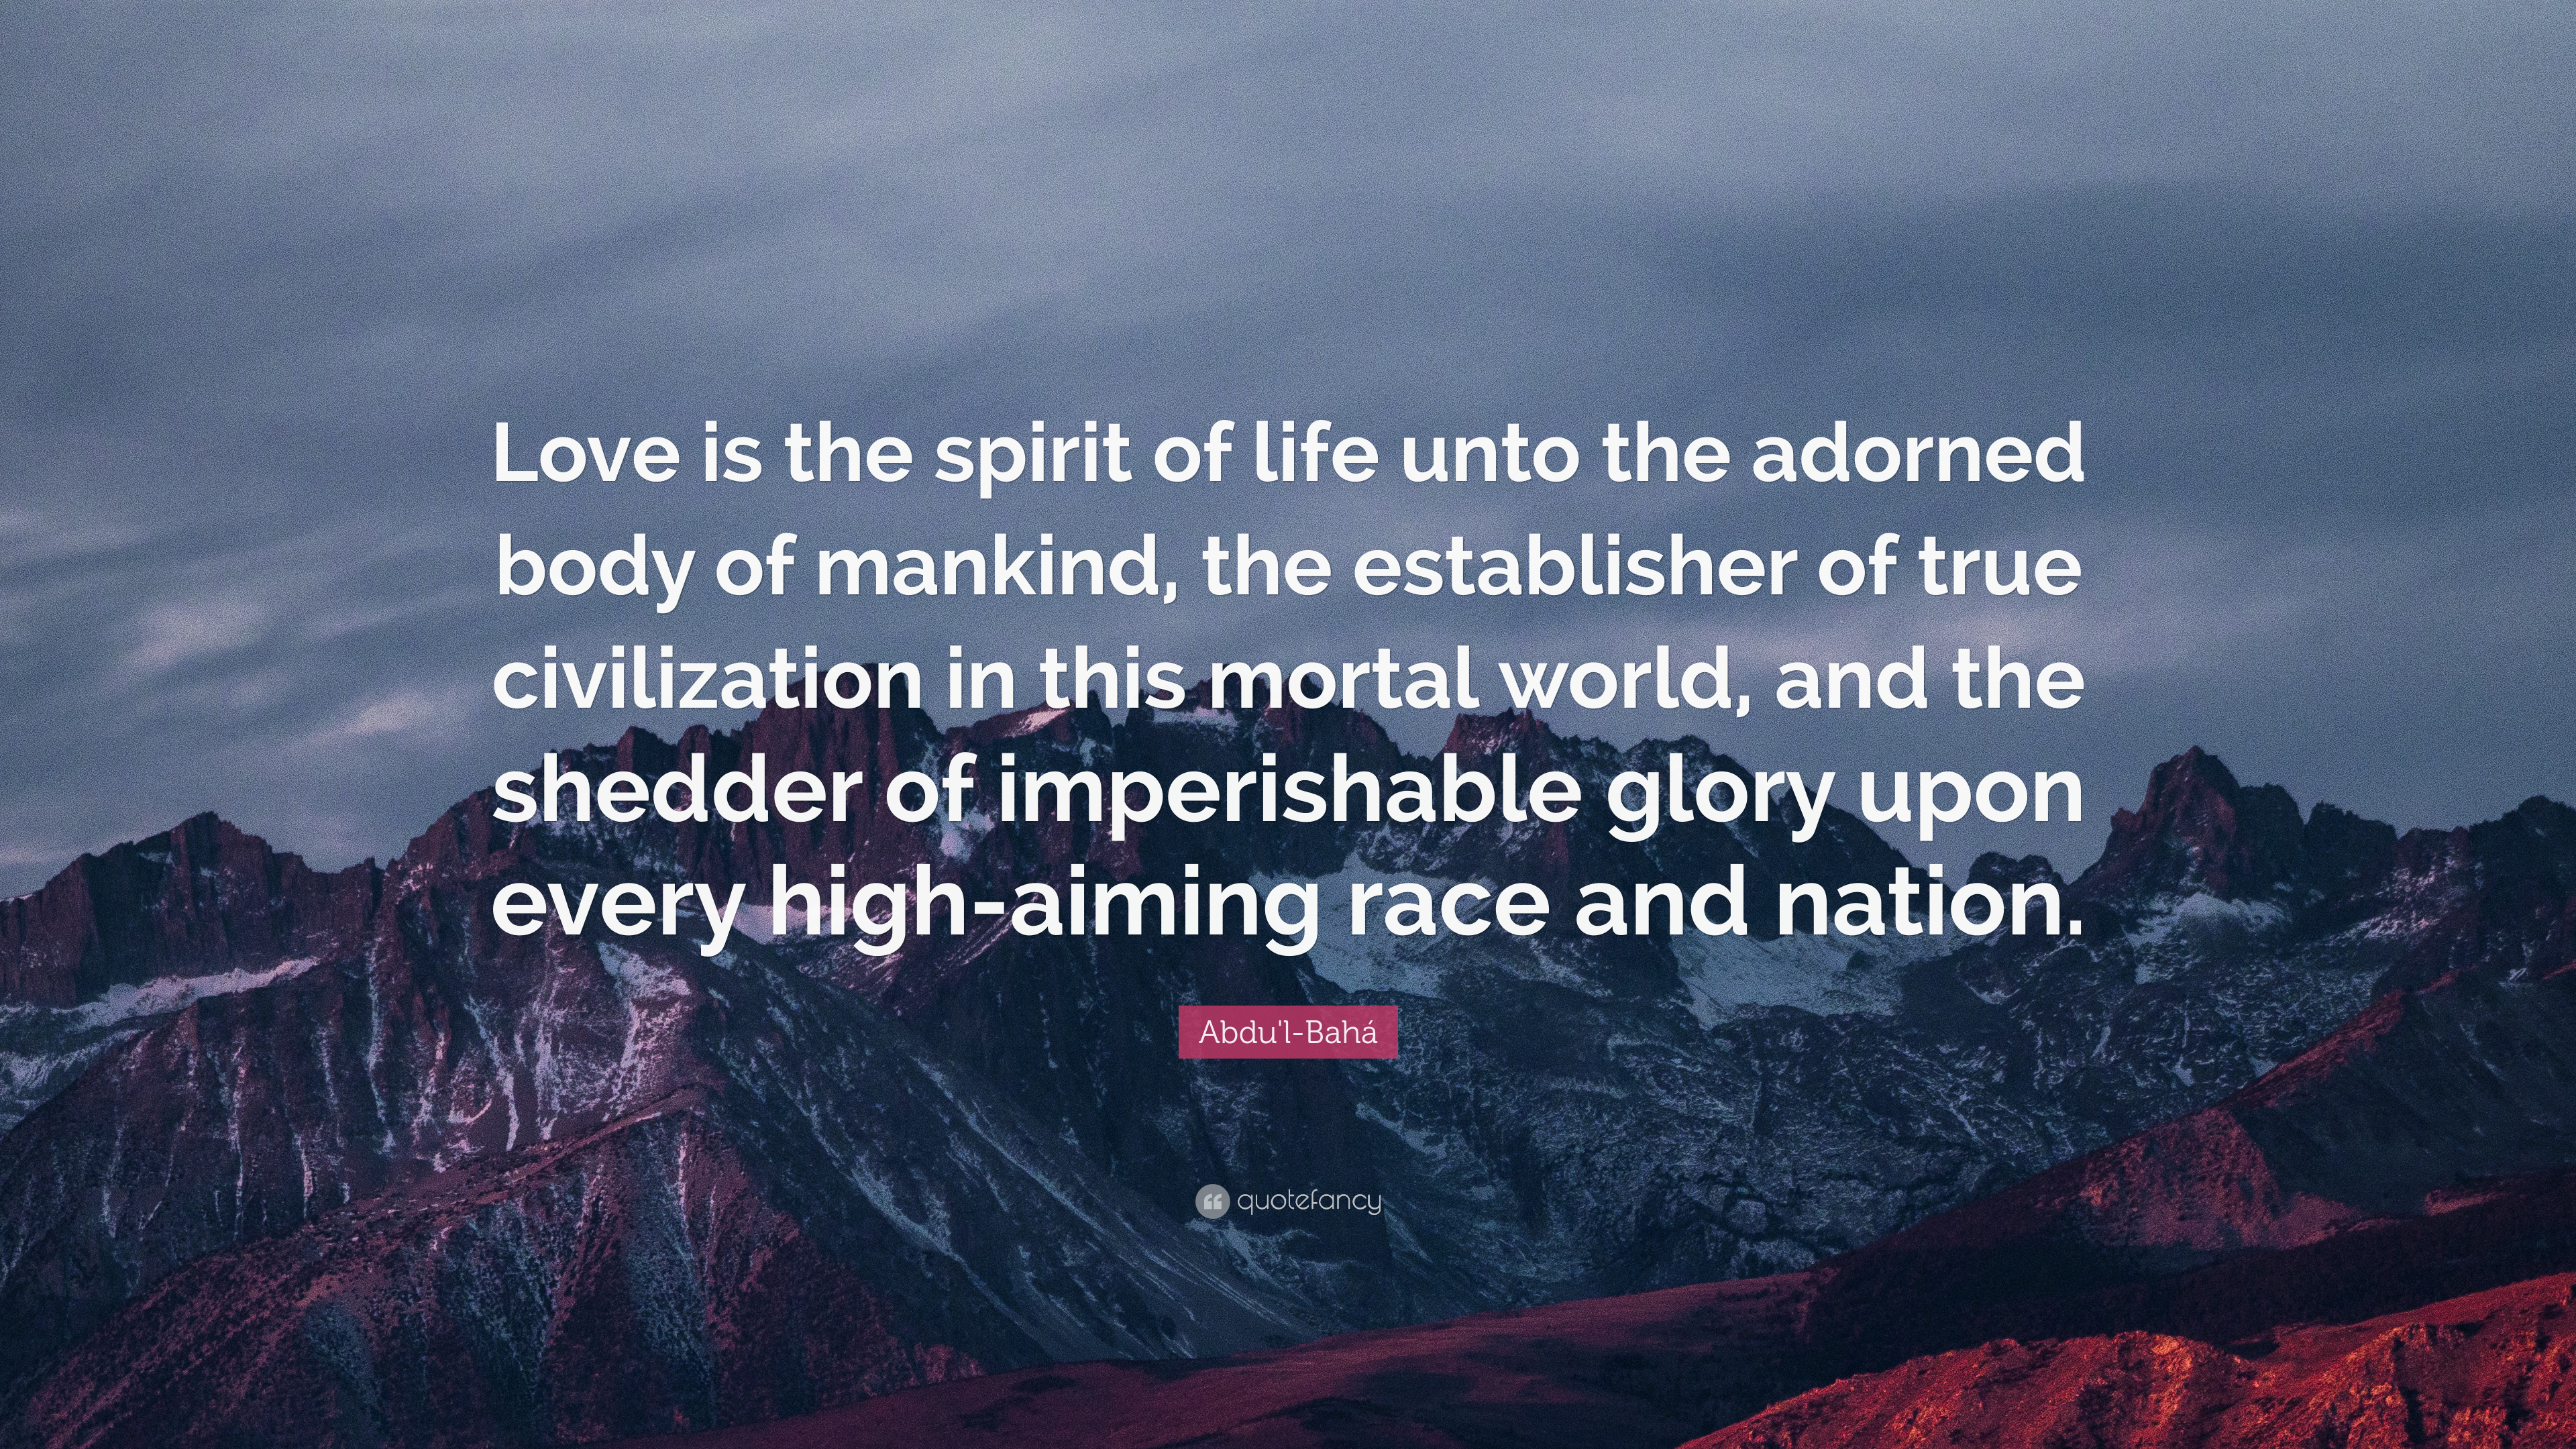 The spirit of this world is that it is in Christianity 8